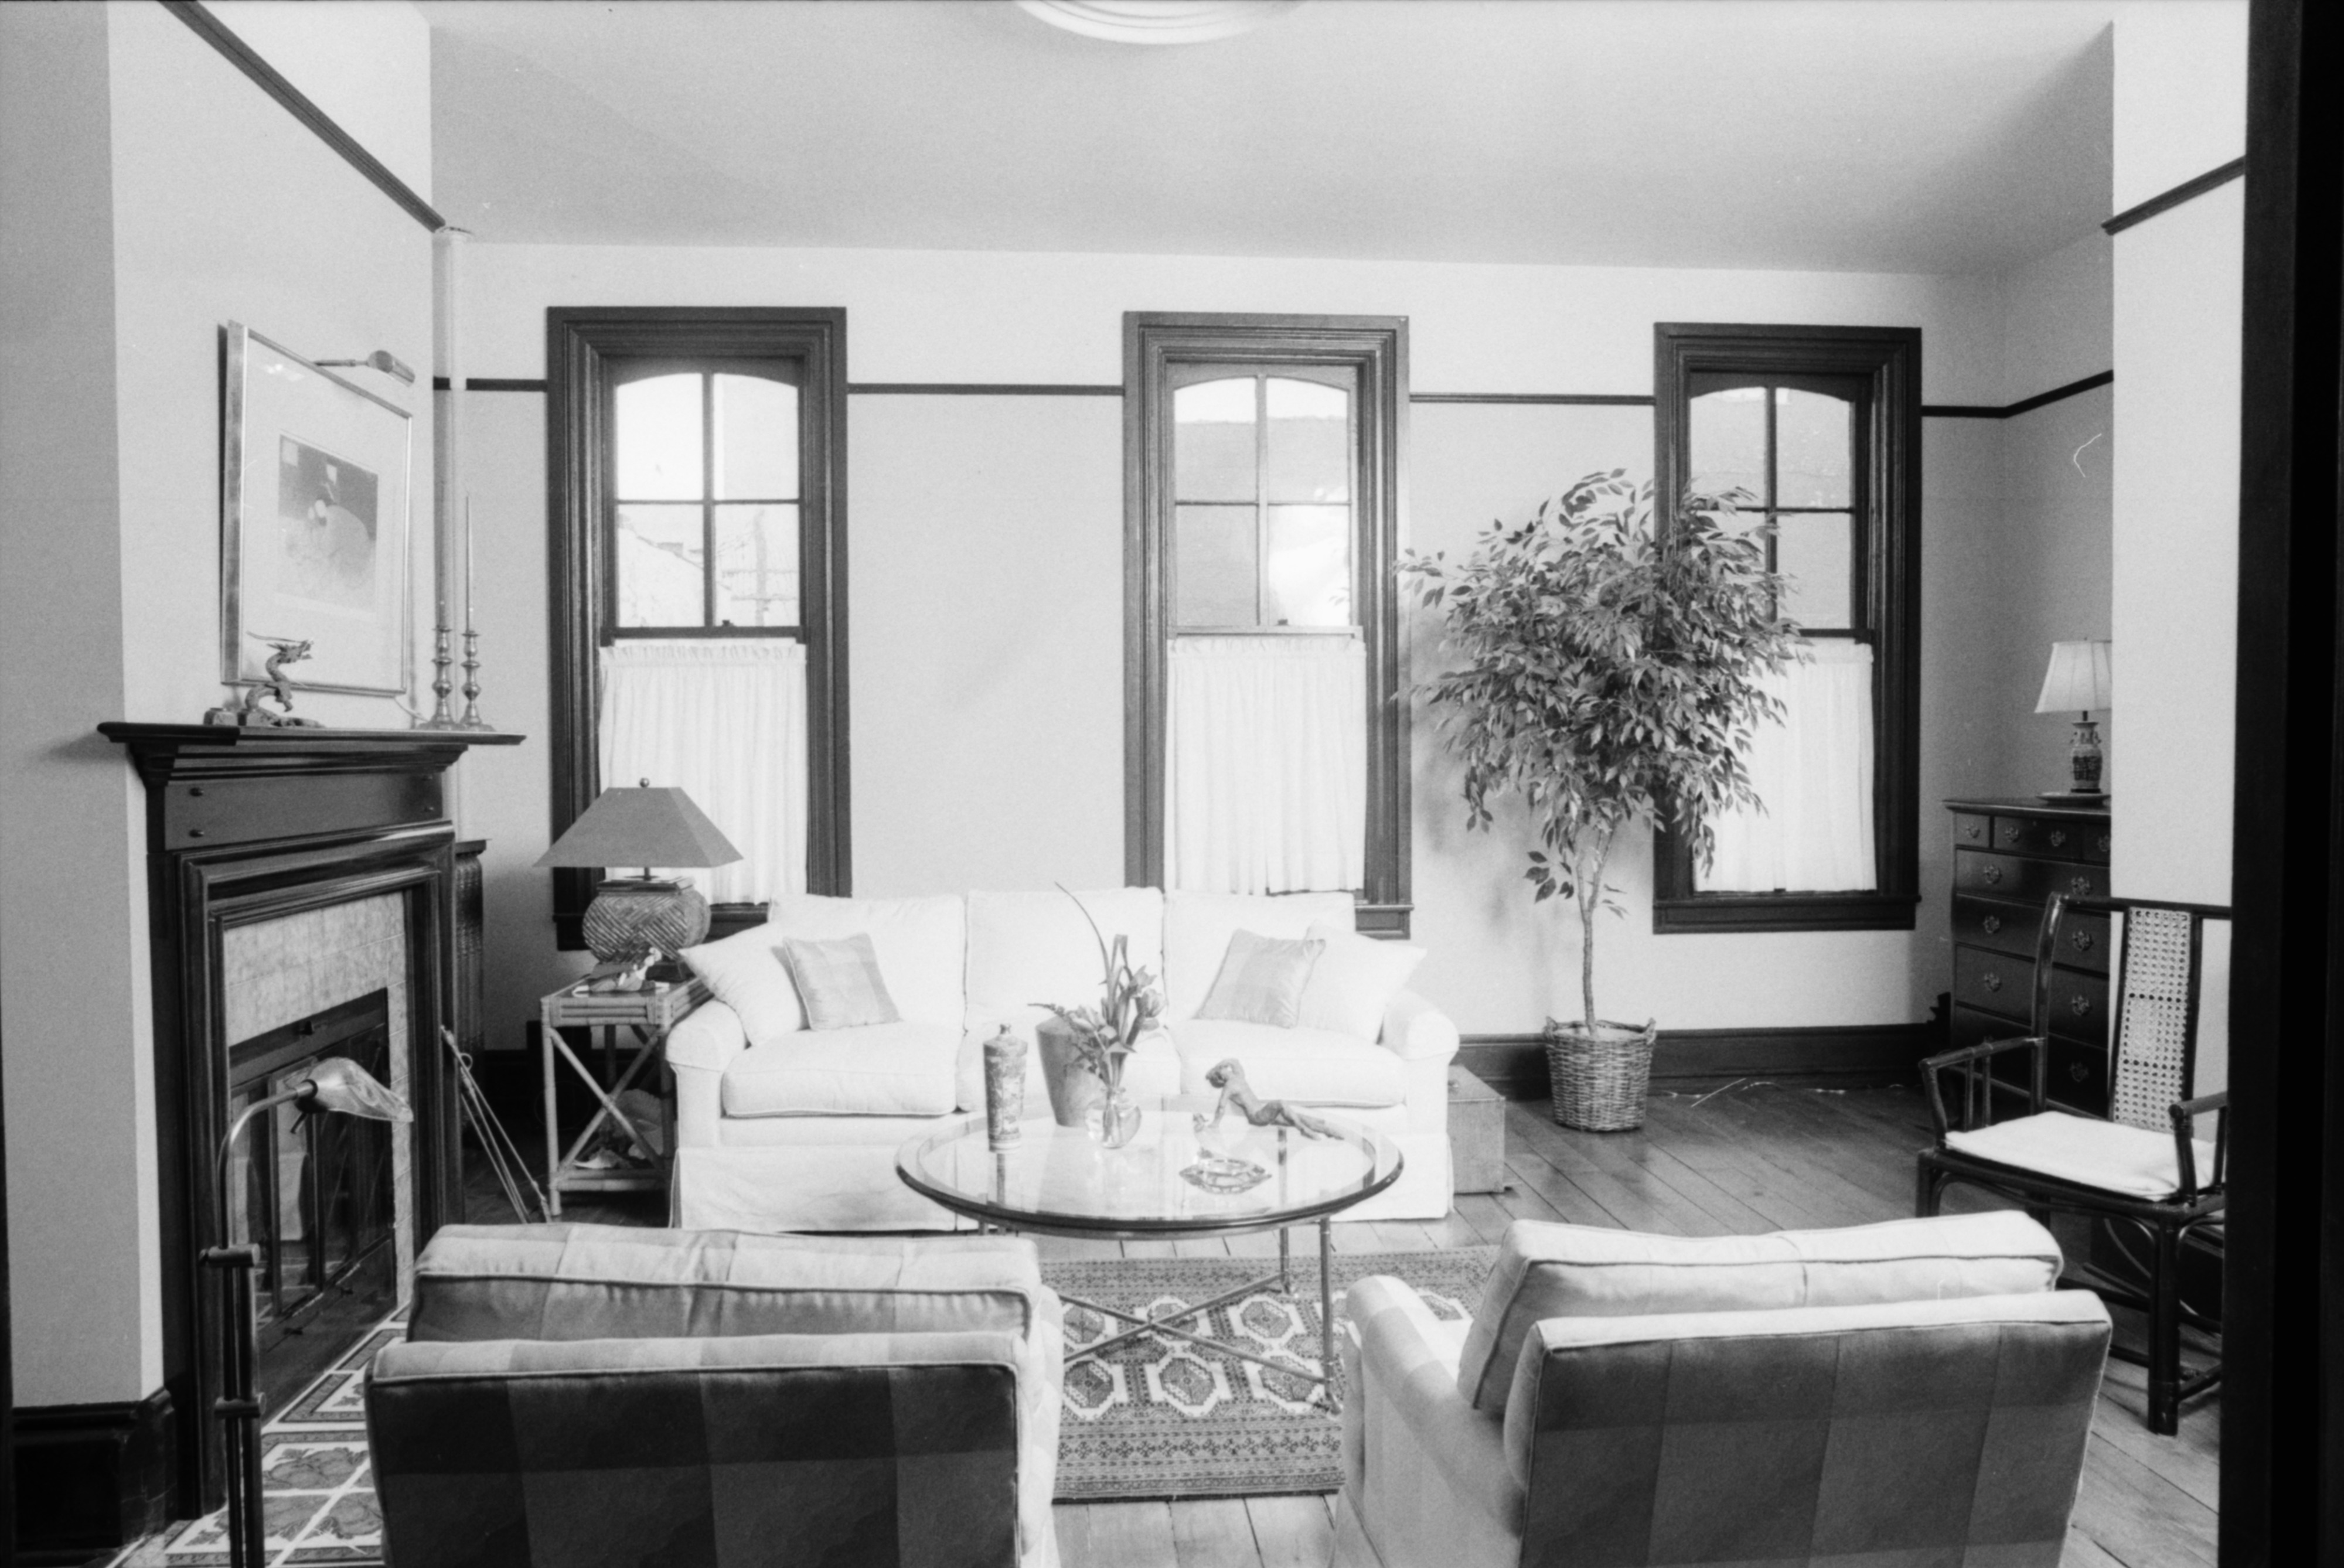 Furnished Living Space in an Upstairs Apartment on West Liberty Street, August 1988 image